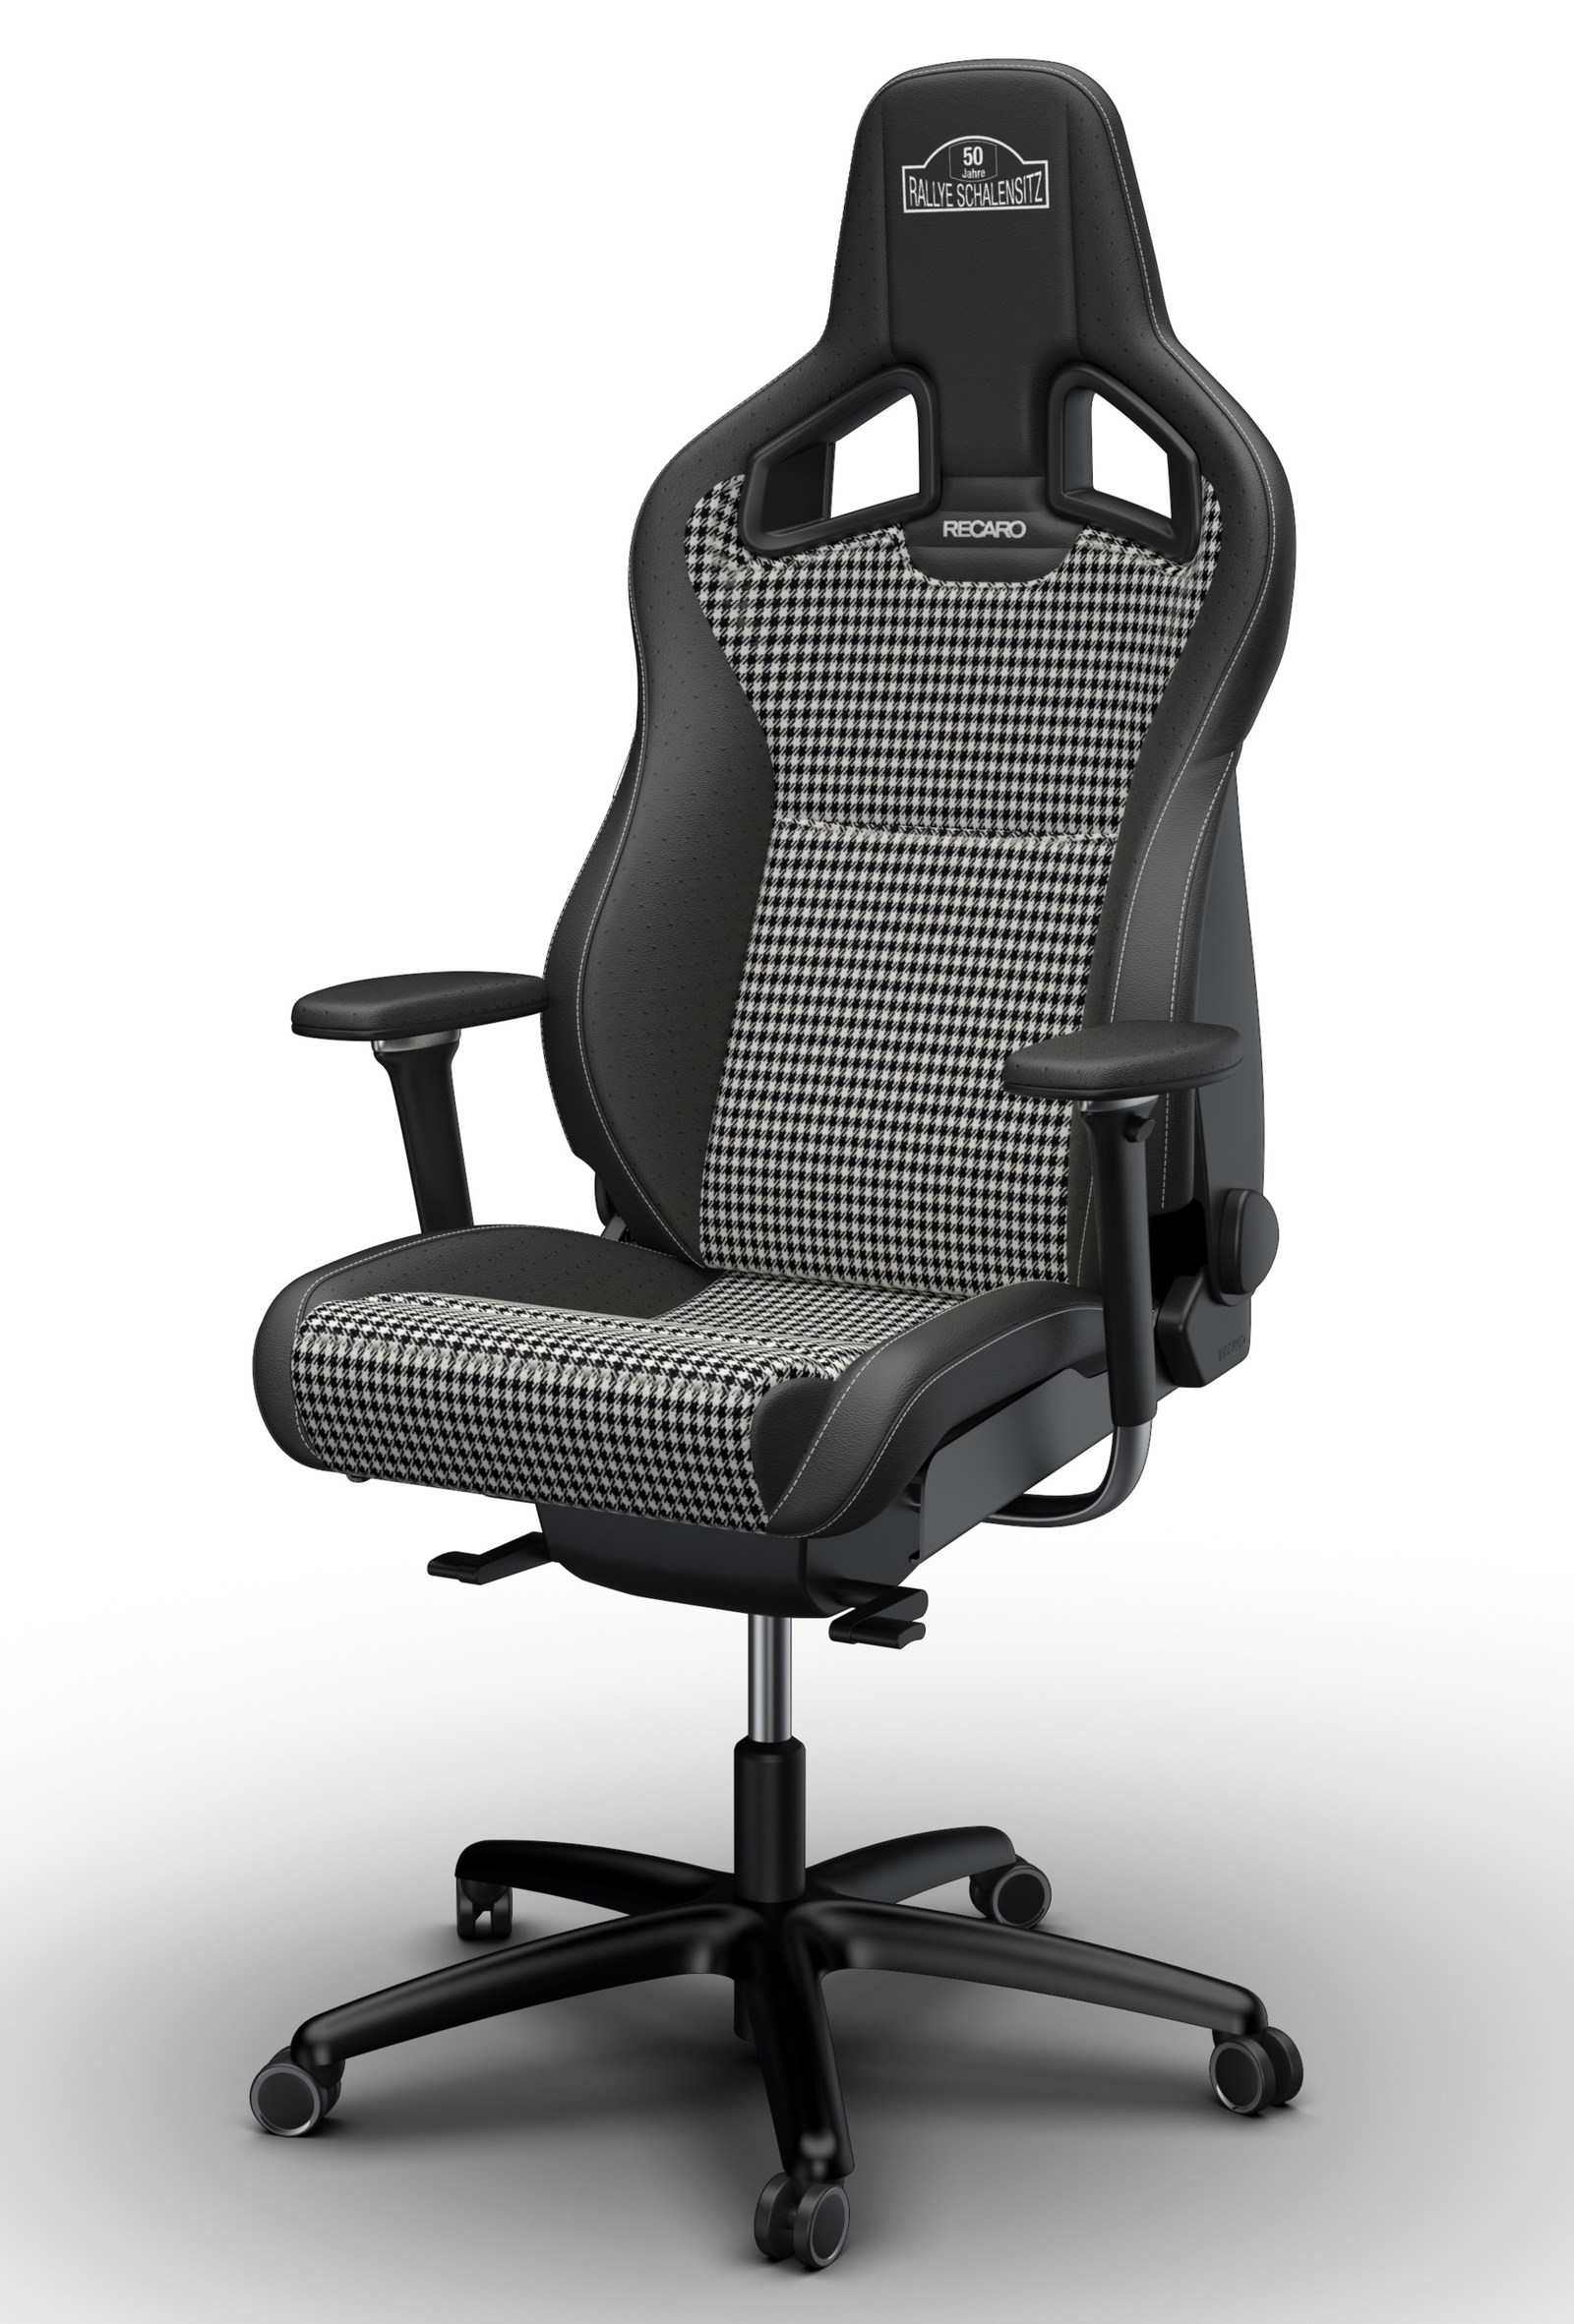 Recaro Desk Chair Images Recaro Office Chair - Recaro desk chair